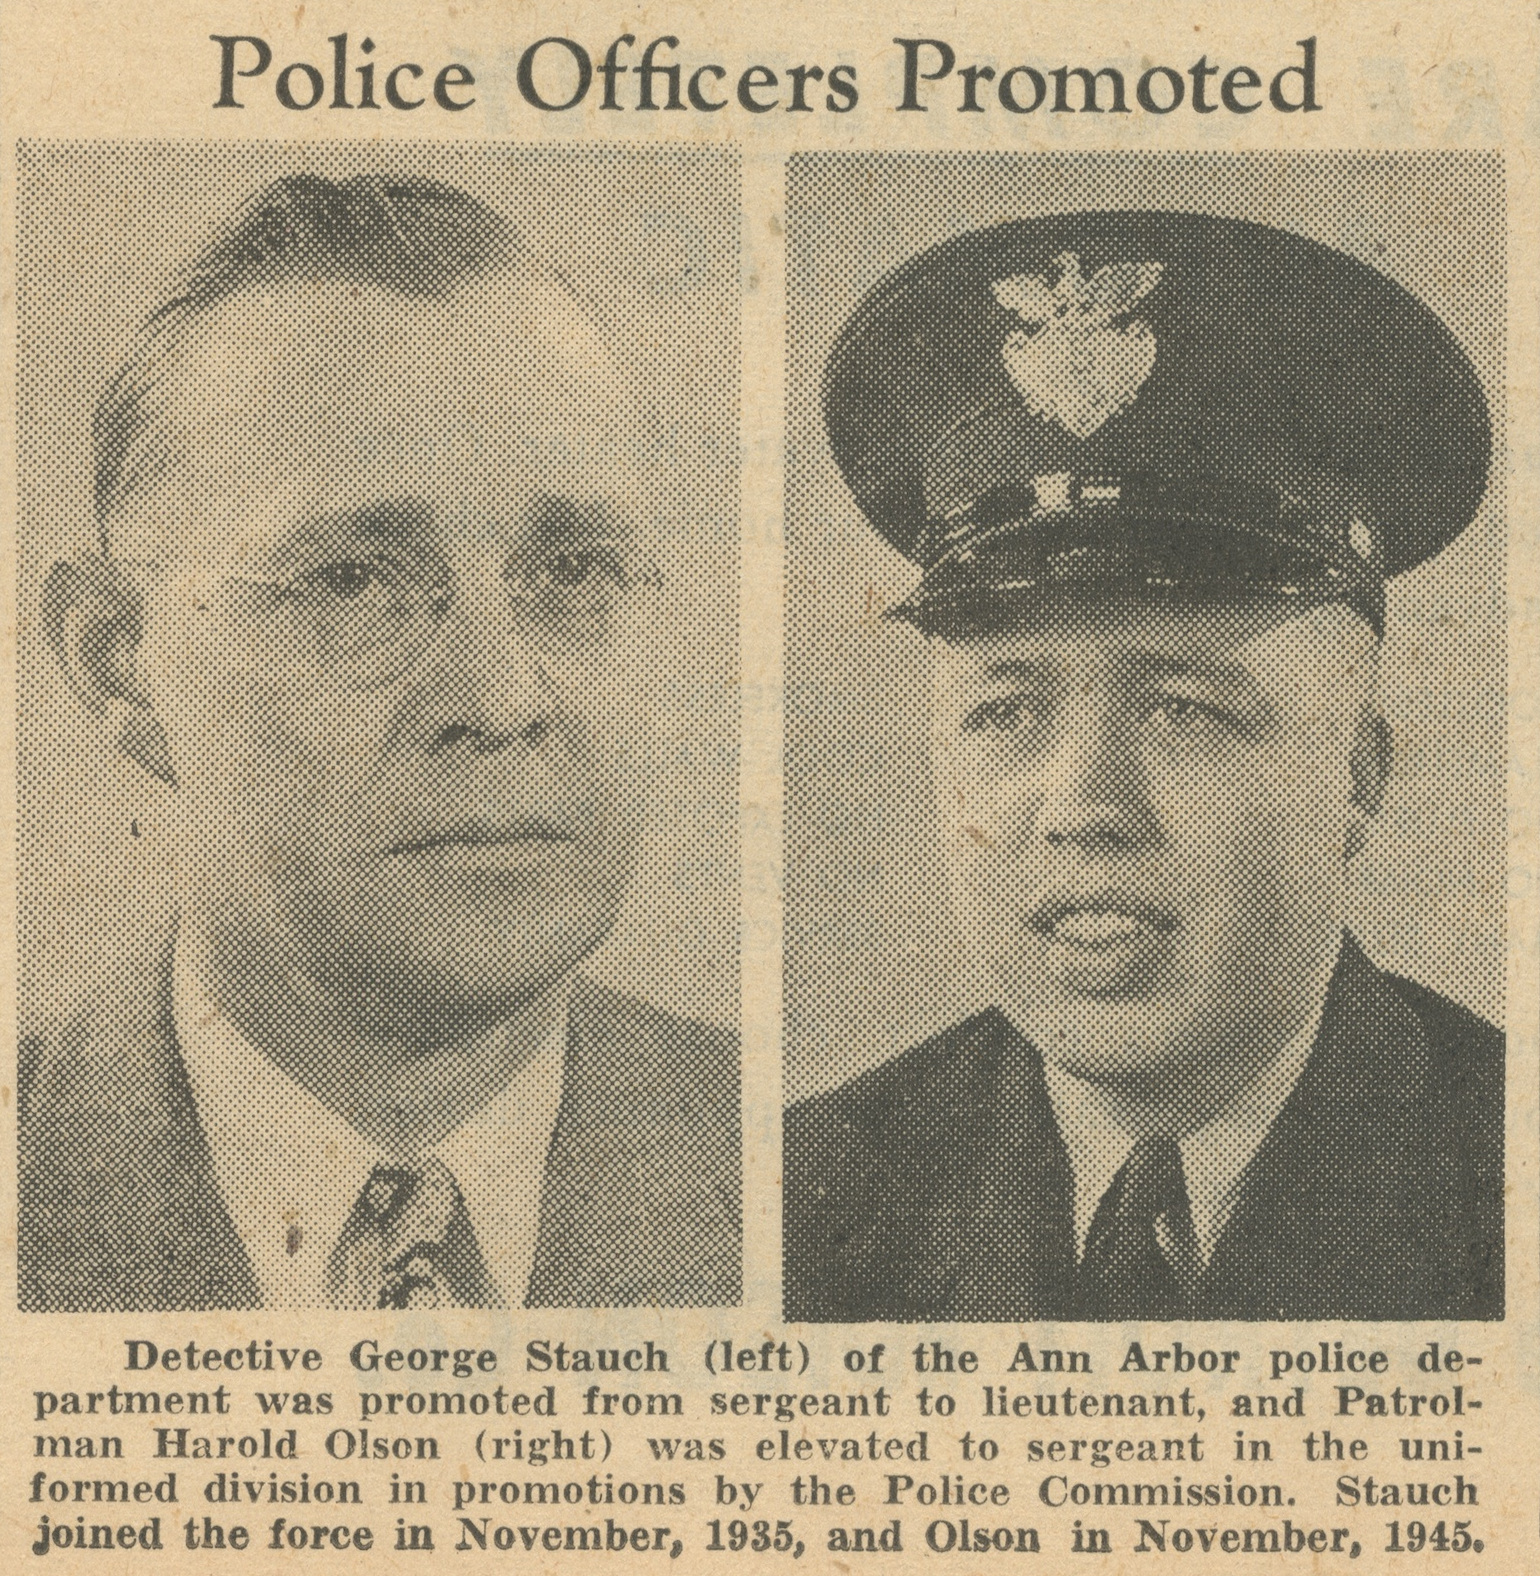 Police Officers Promoted image